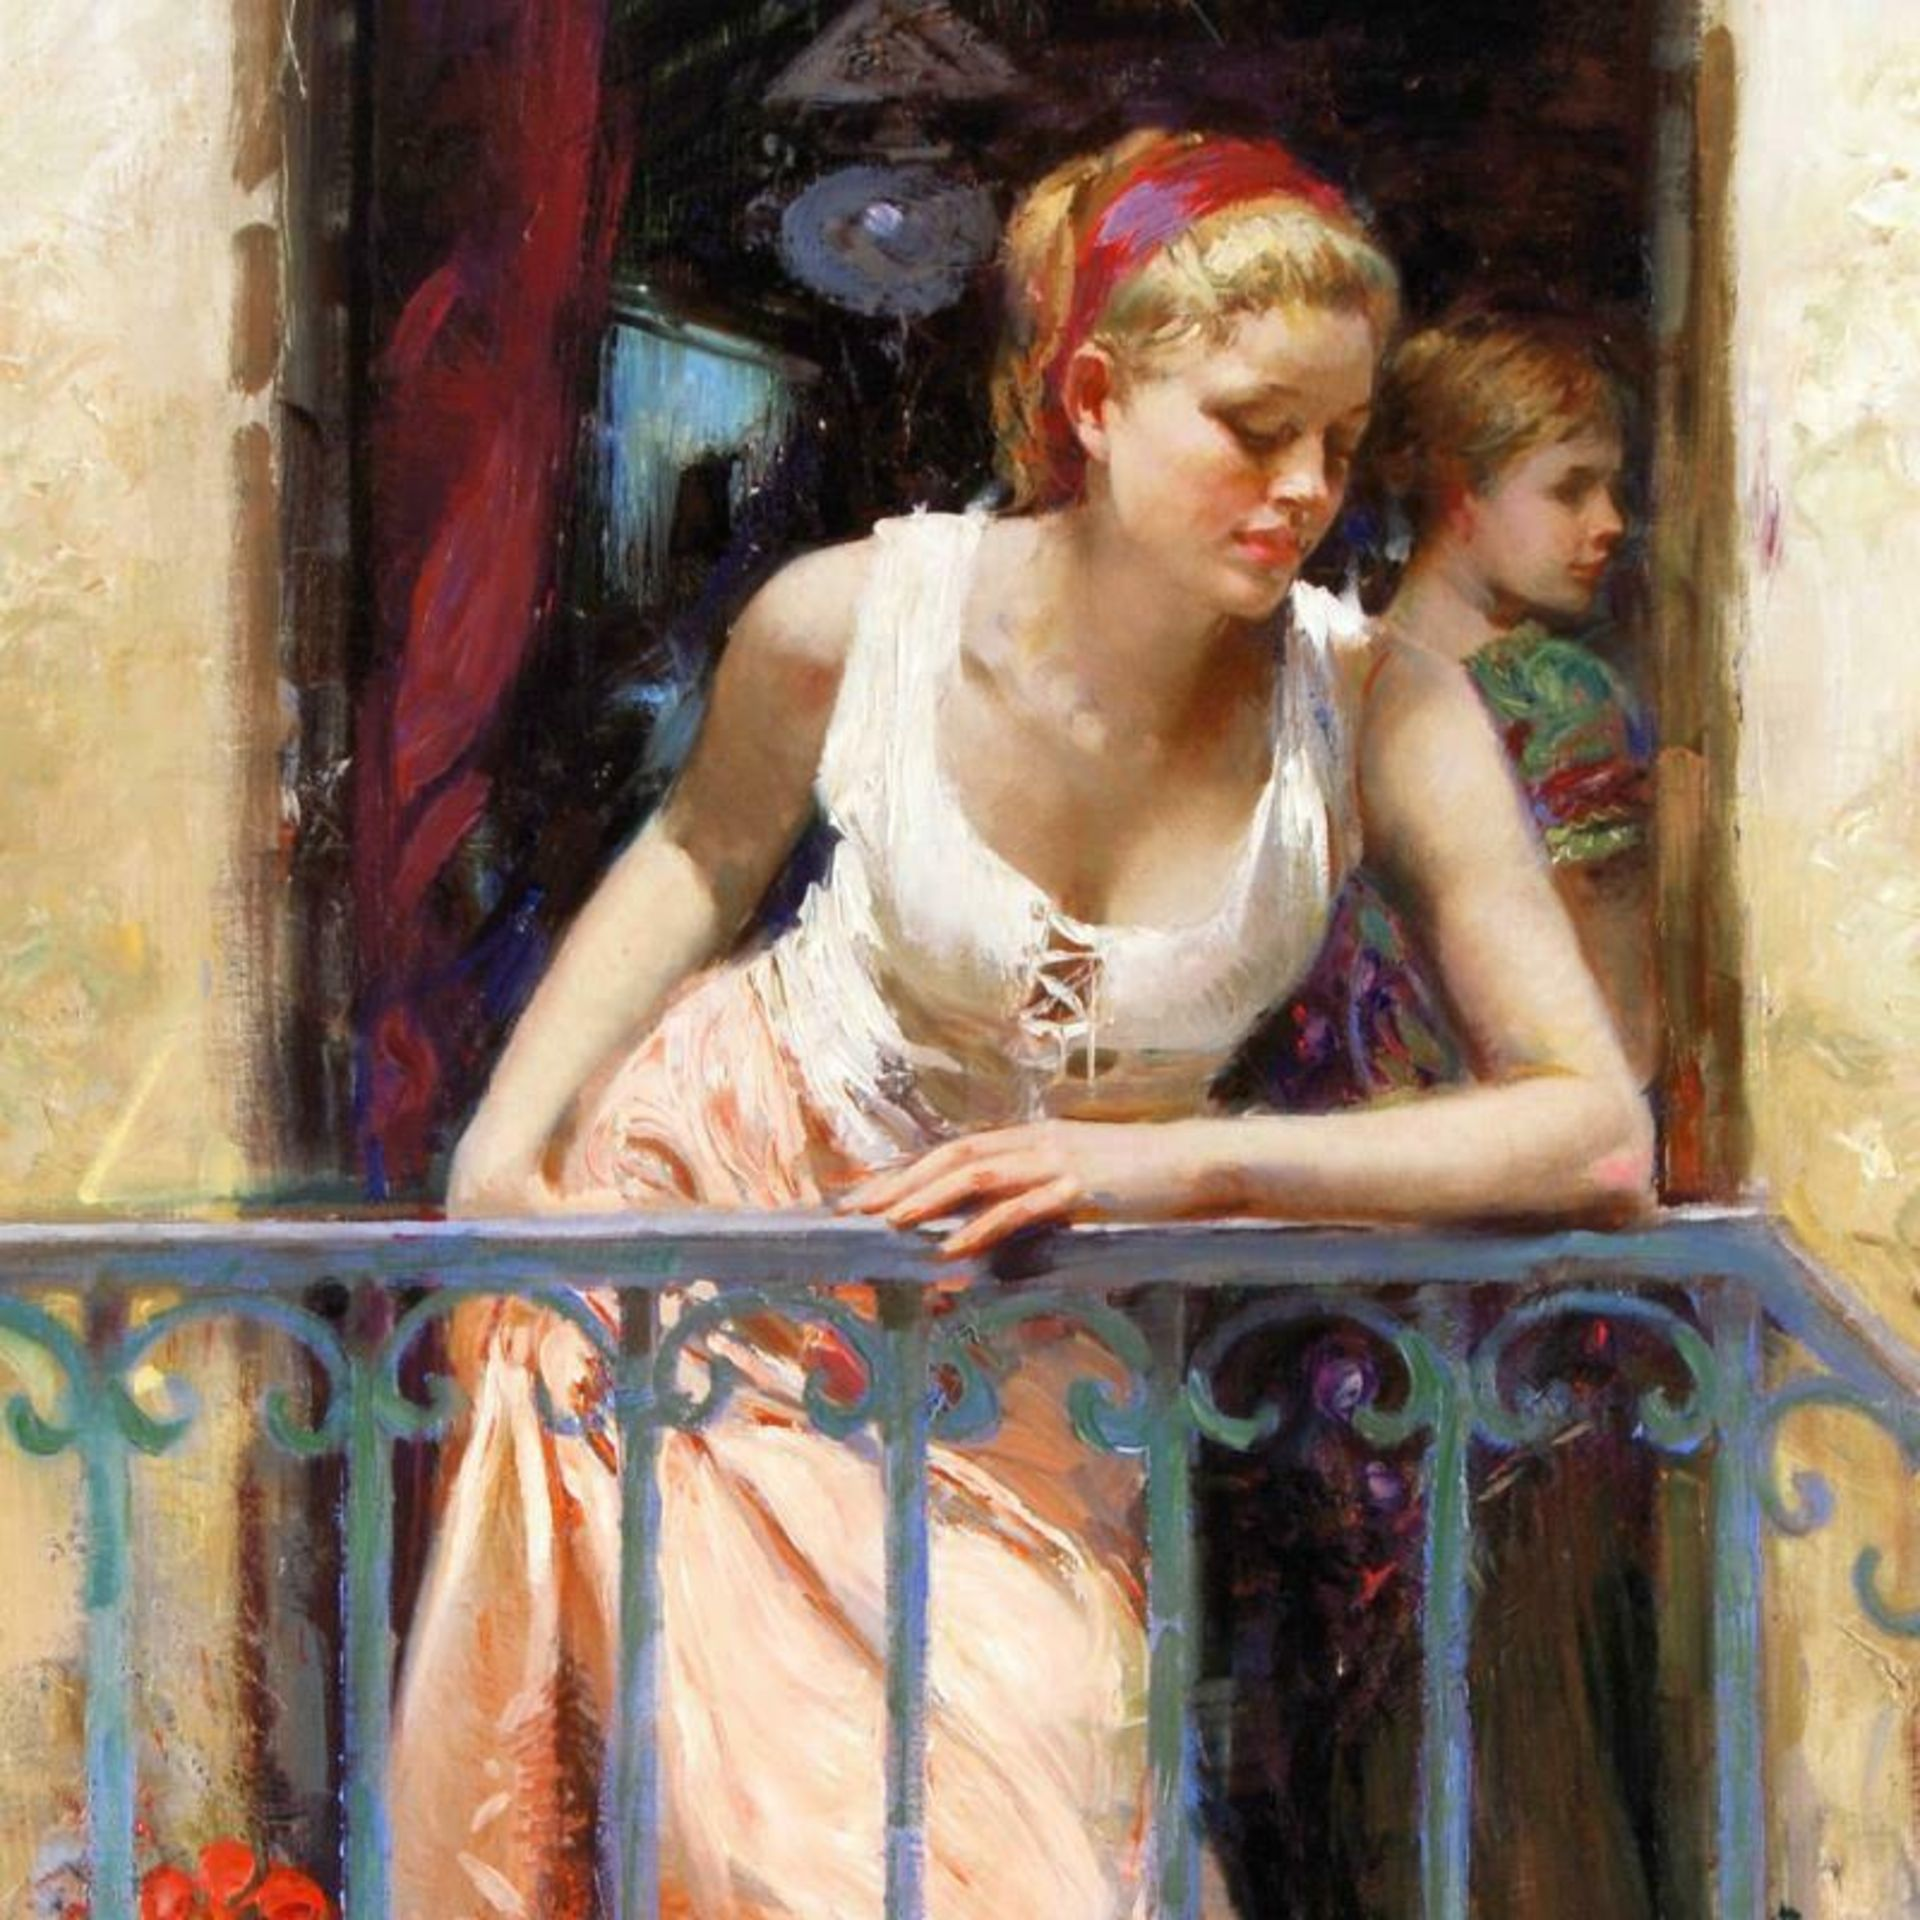 At the Balcony by Pino (1939-2010) - Image 2 of 2